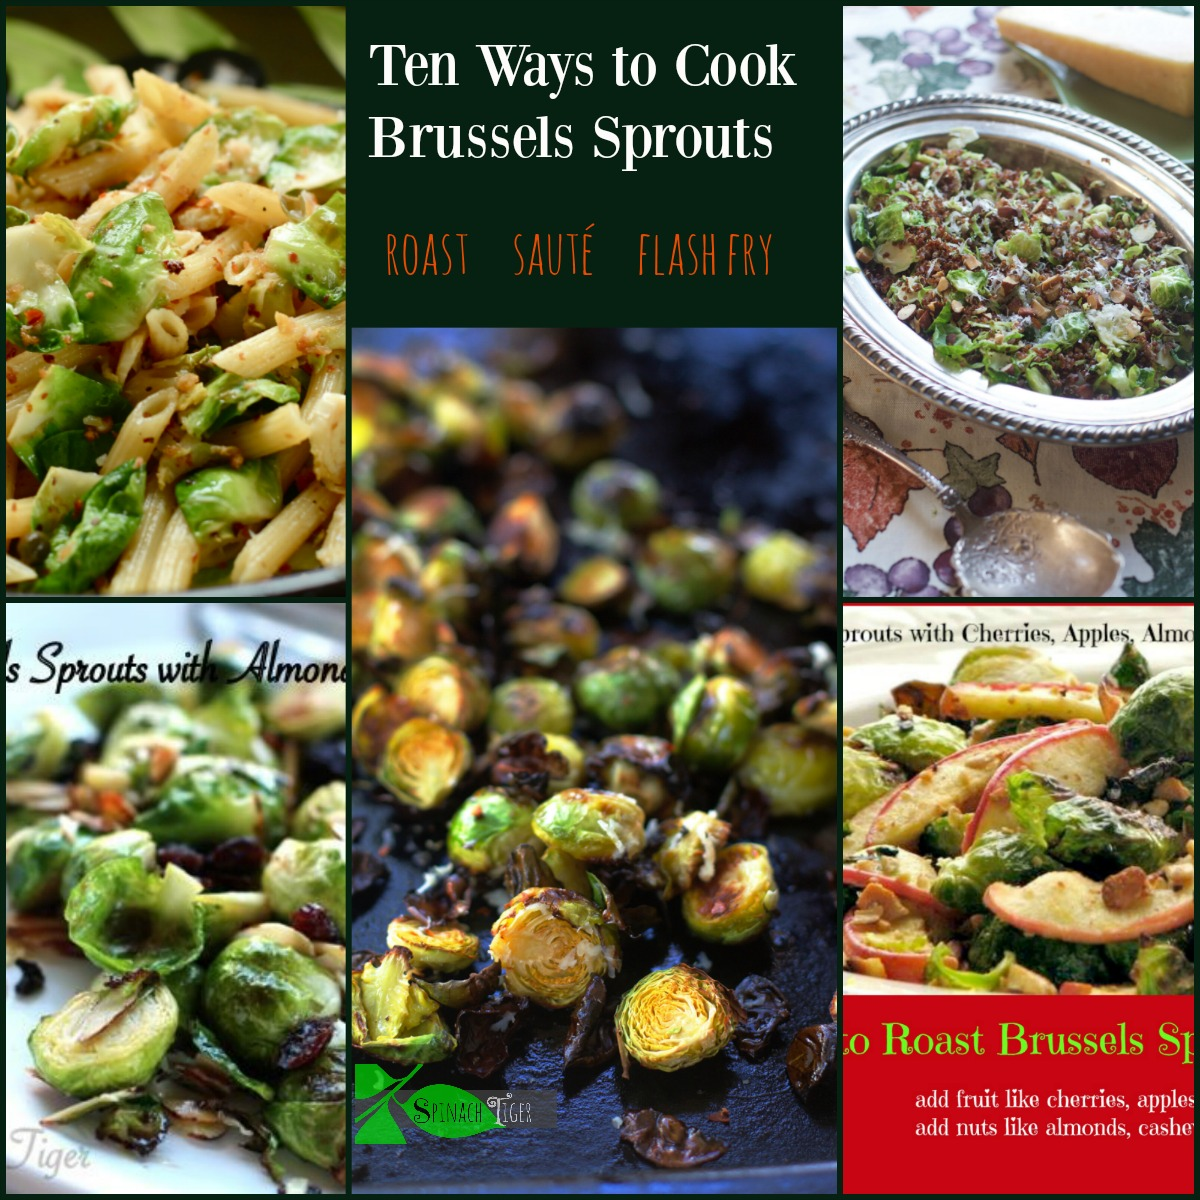 How to Cook Brussels Sprouts by Angela Roberts